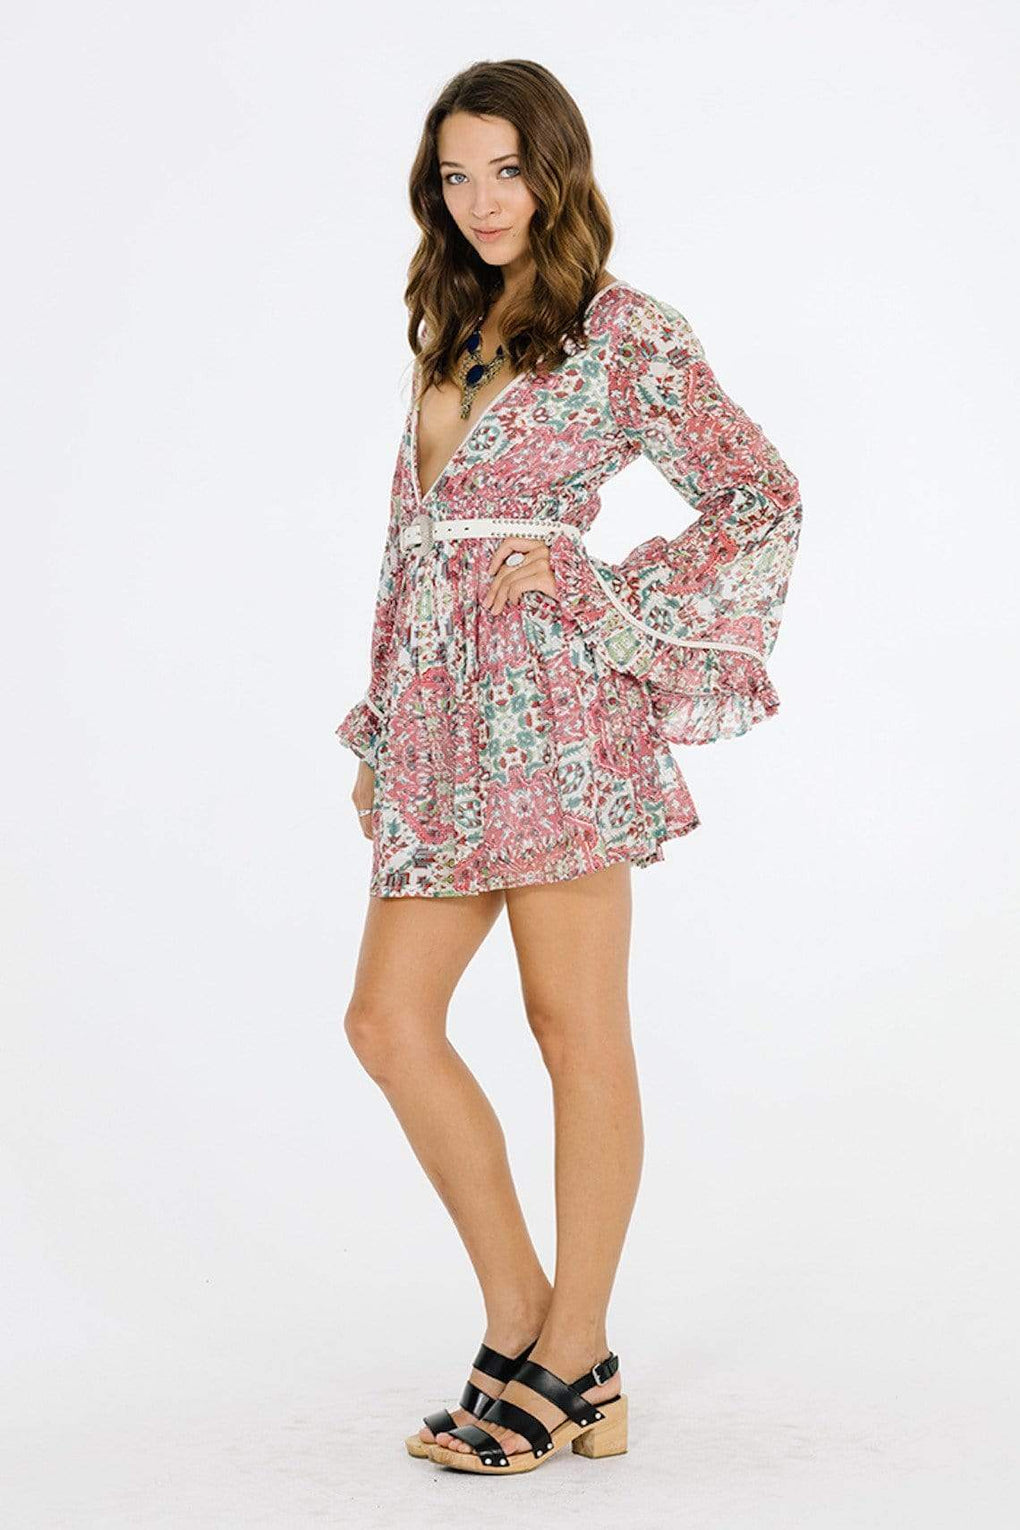 Sunset Rose Bell Sleeve Dress - Danish Fashion & Living Online Store SALE